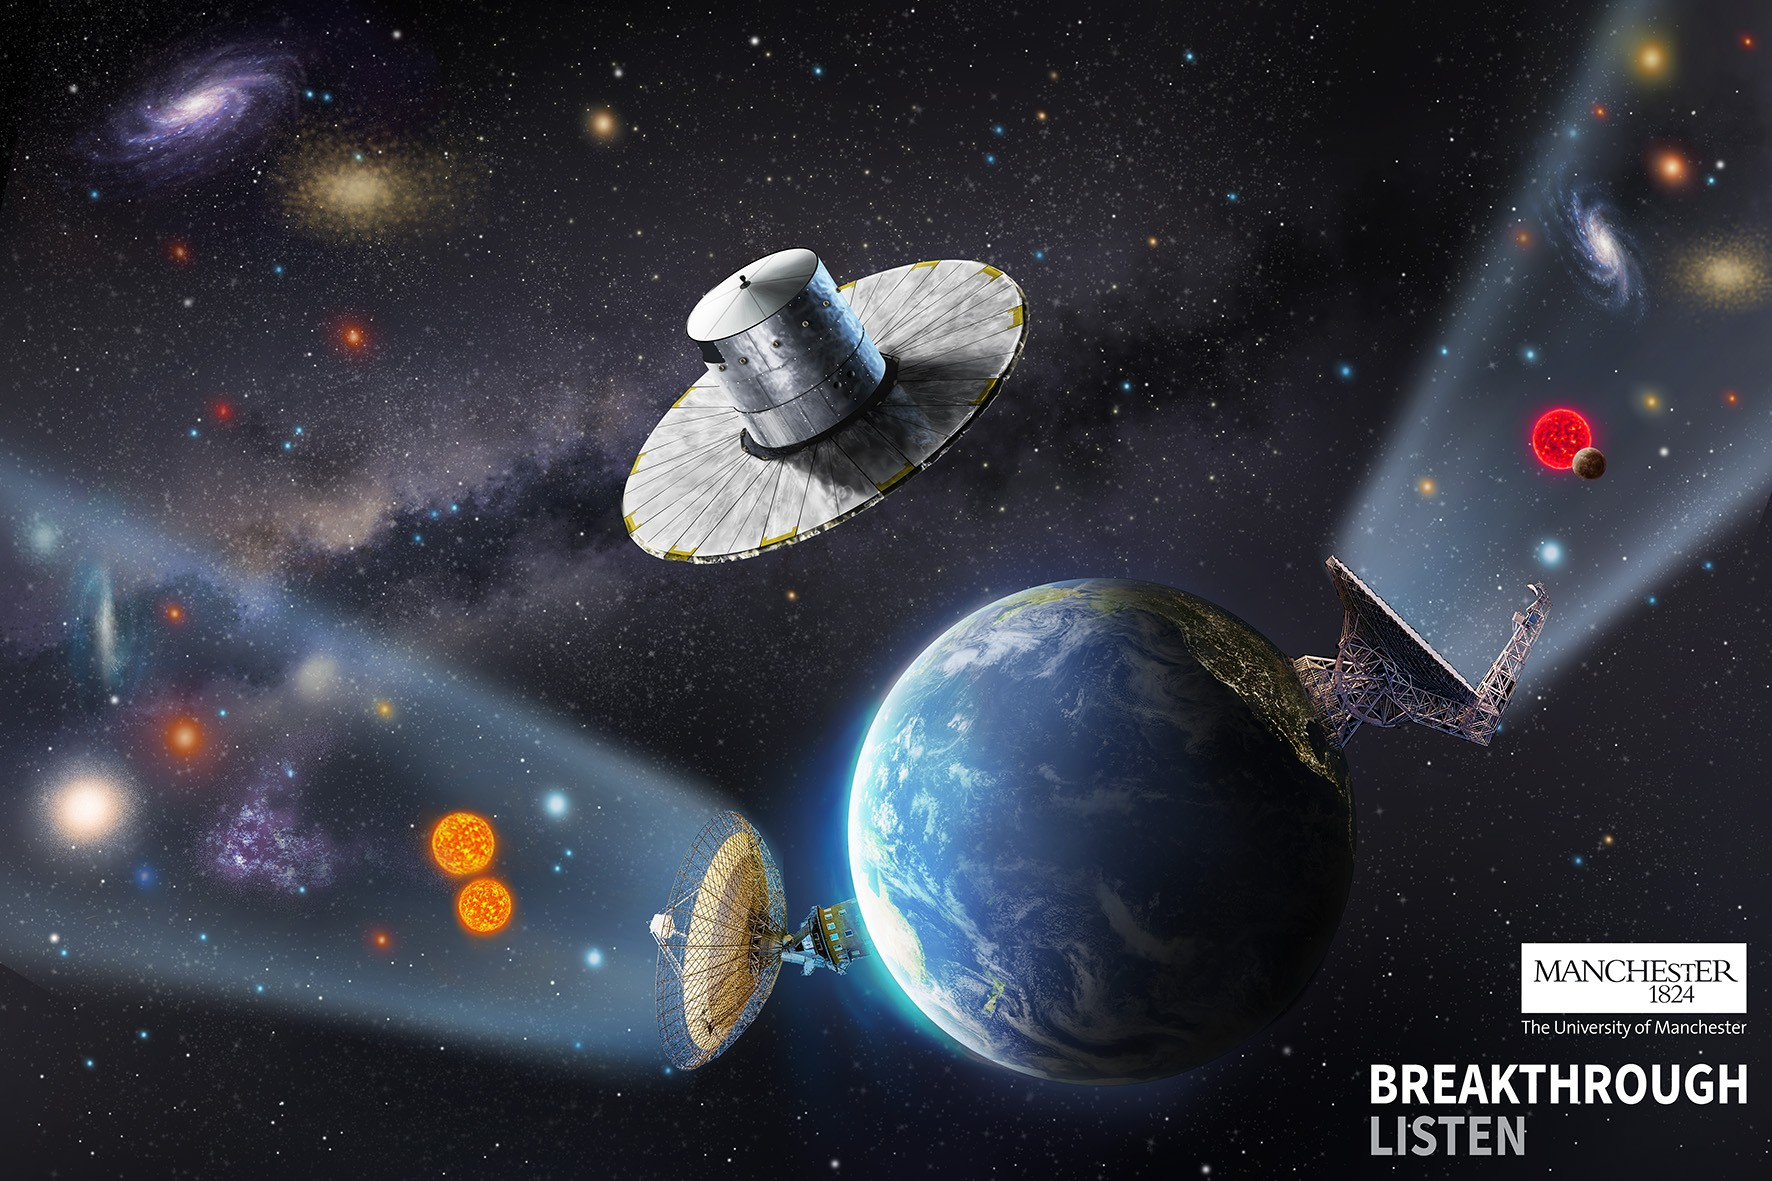 Breakthrough Listen, the search for extra-terrestrial life